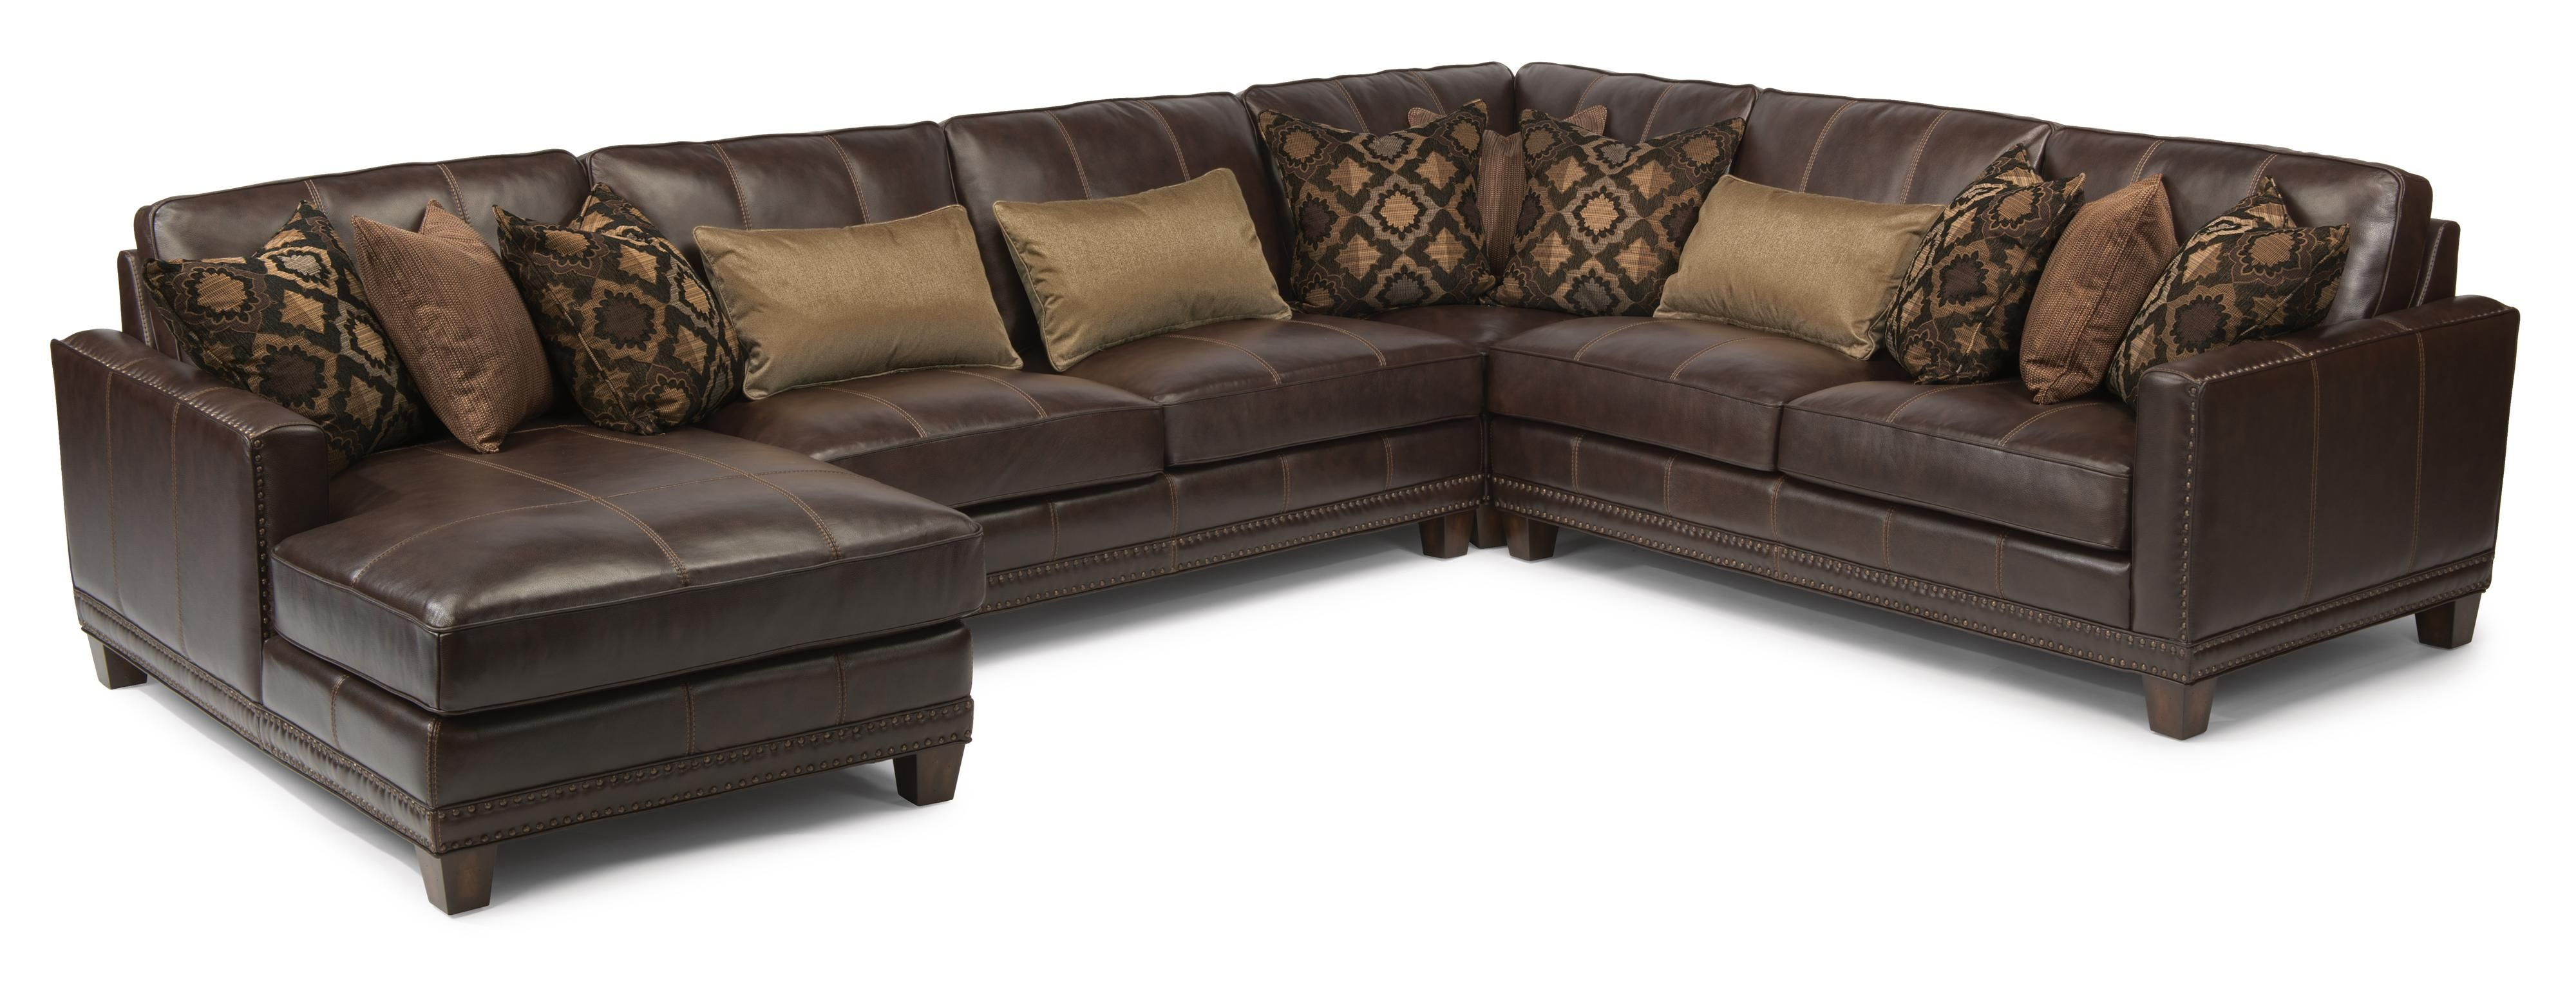 Latitudes Port Royal 4 Pc Sectional Sofa by Flexsteel SKU 1373